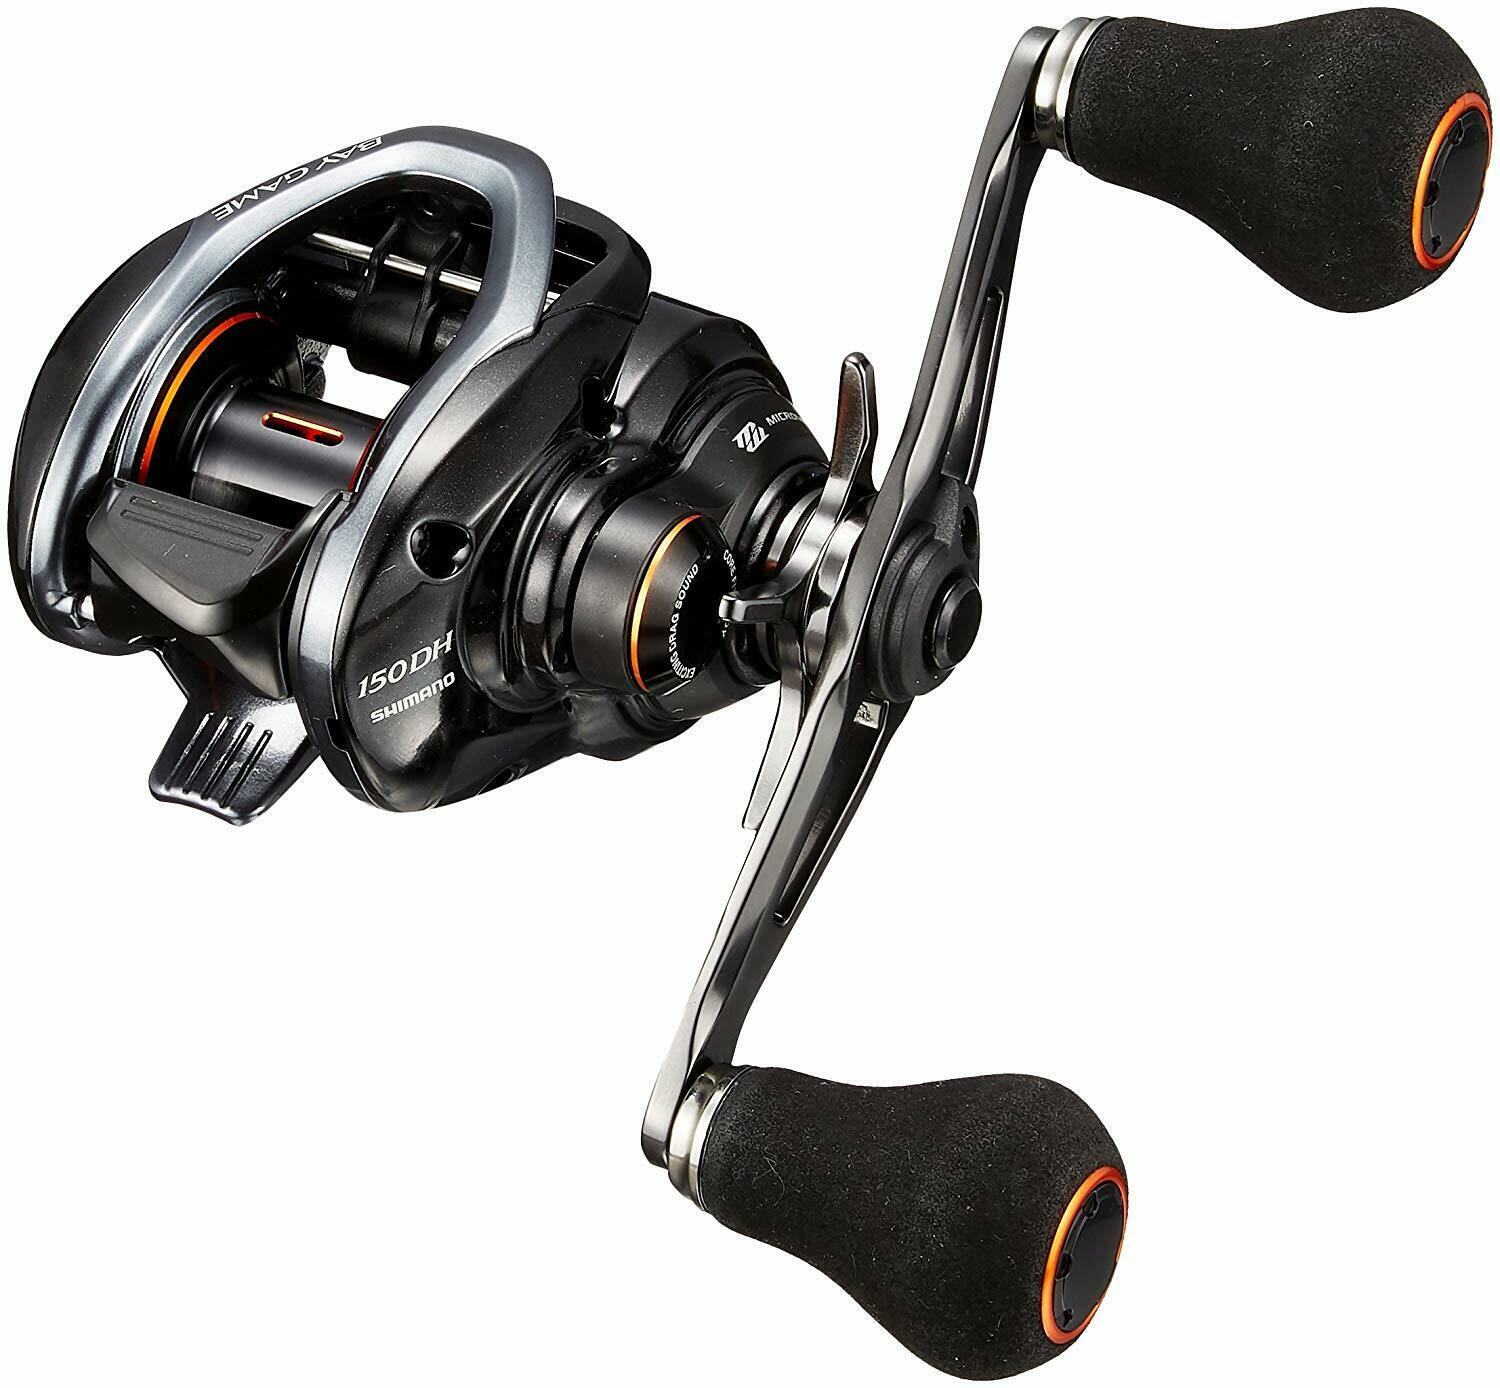 18 Bay gioco 150DH right hele Shiuomoo From Stylish anglers EMS